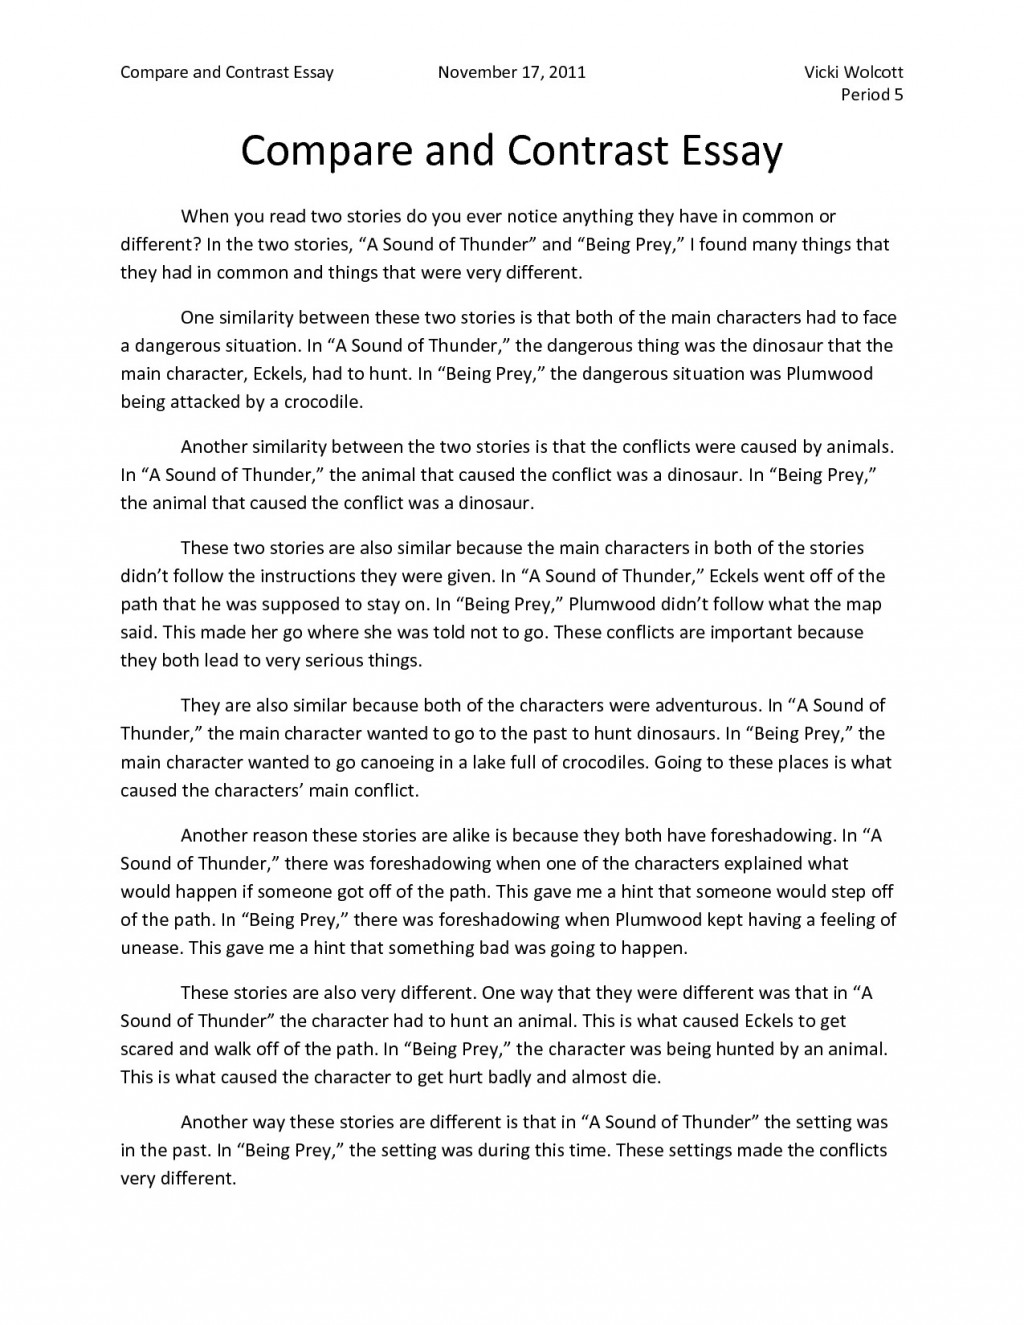 006 Essay Example Compare Contrast An Of And Comparison Ideas Fascinating Topics Graphic Organizer Julius Caesar Answers High School Large